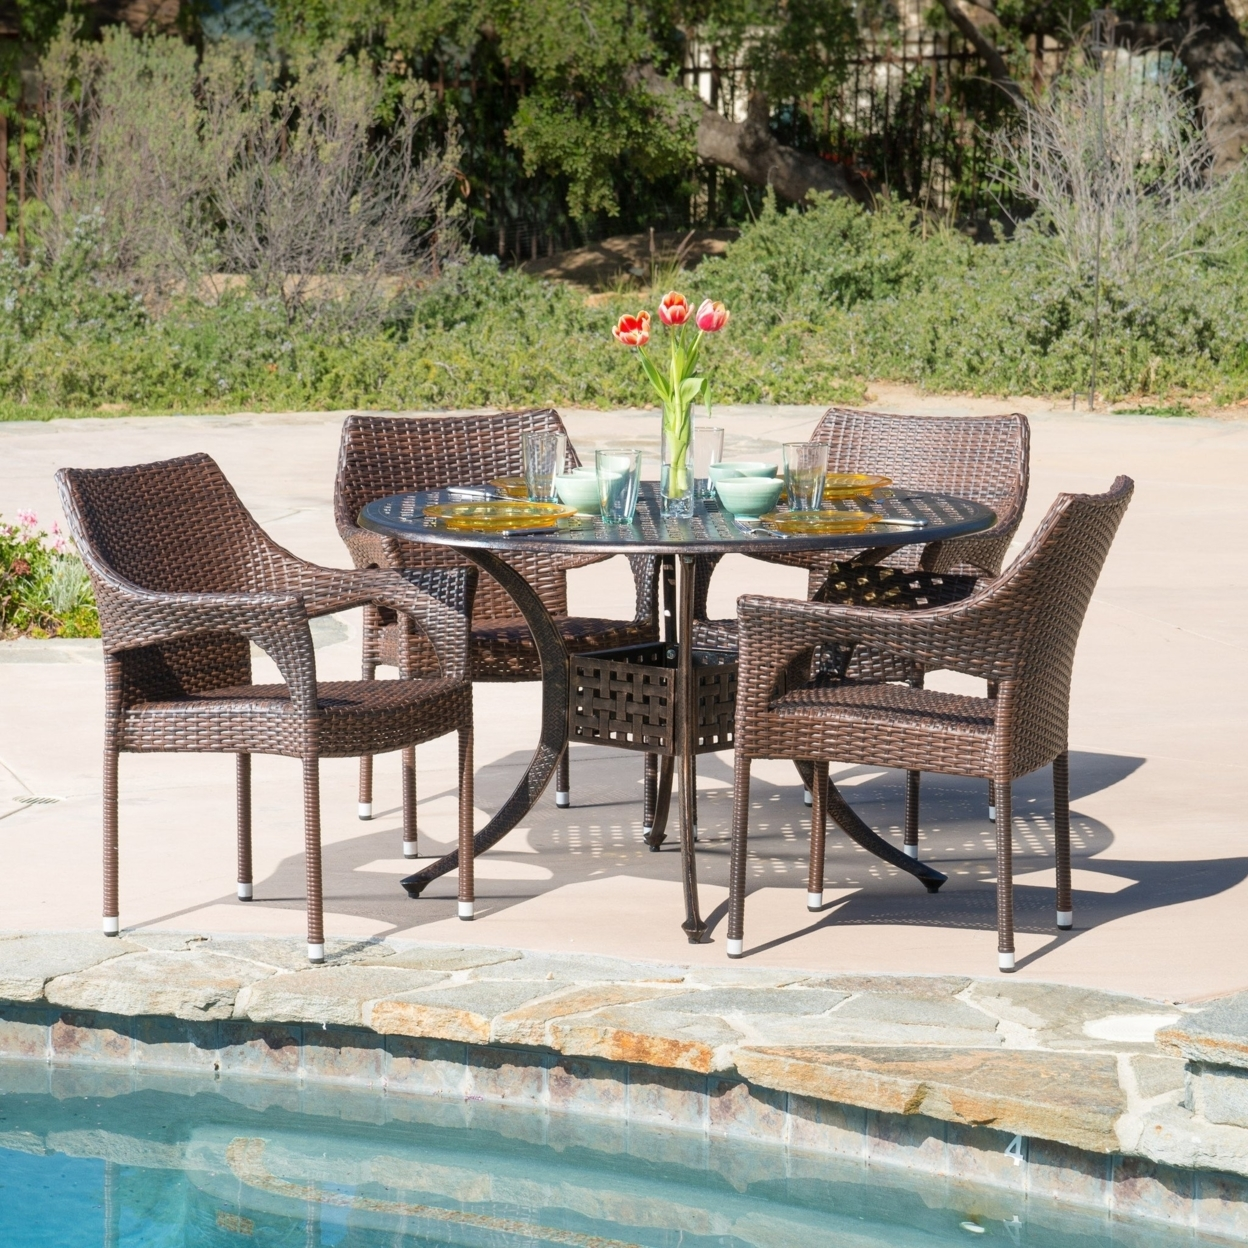 Sonora Outdoor 5pcs Cast Aluminum Wicker Dining Set